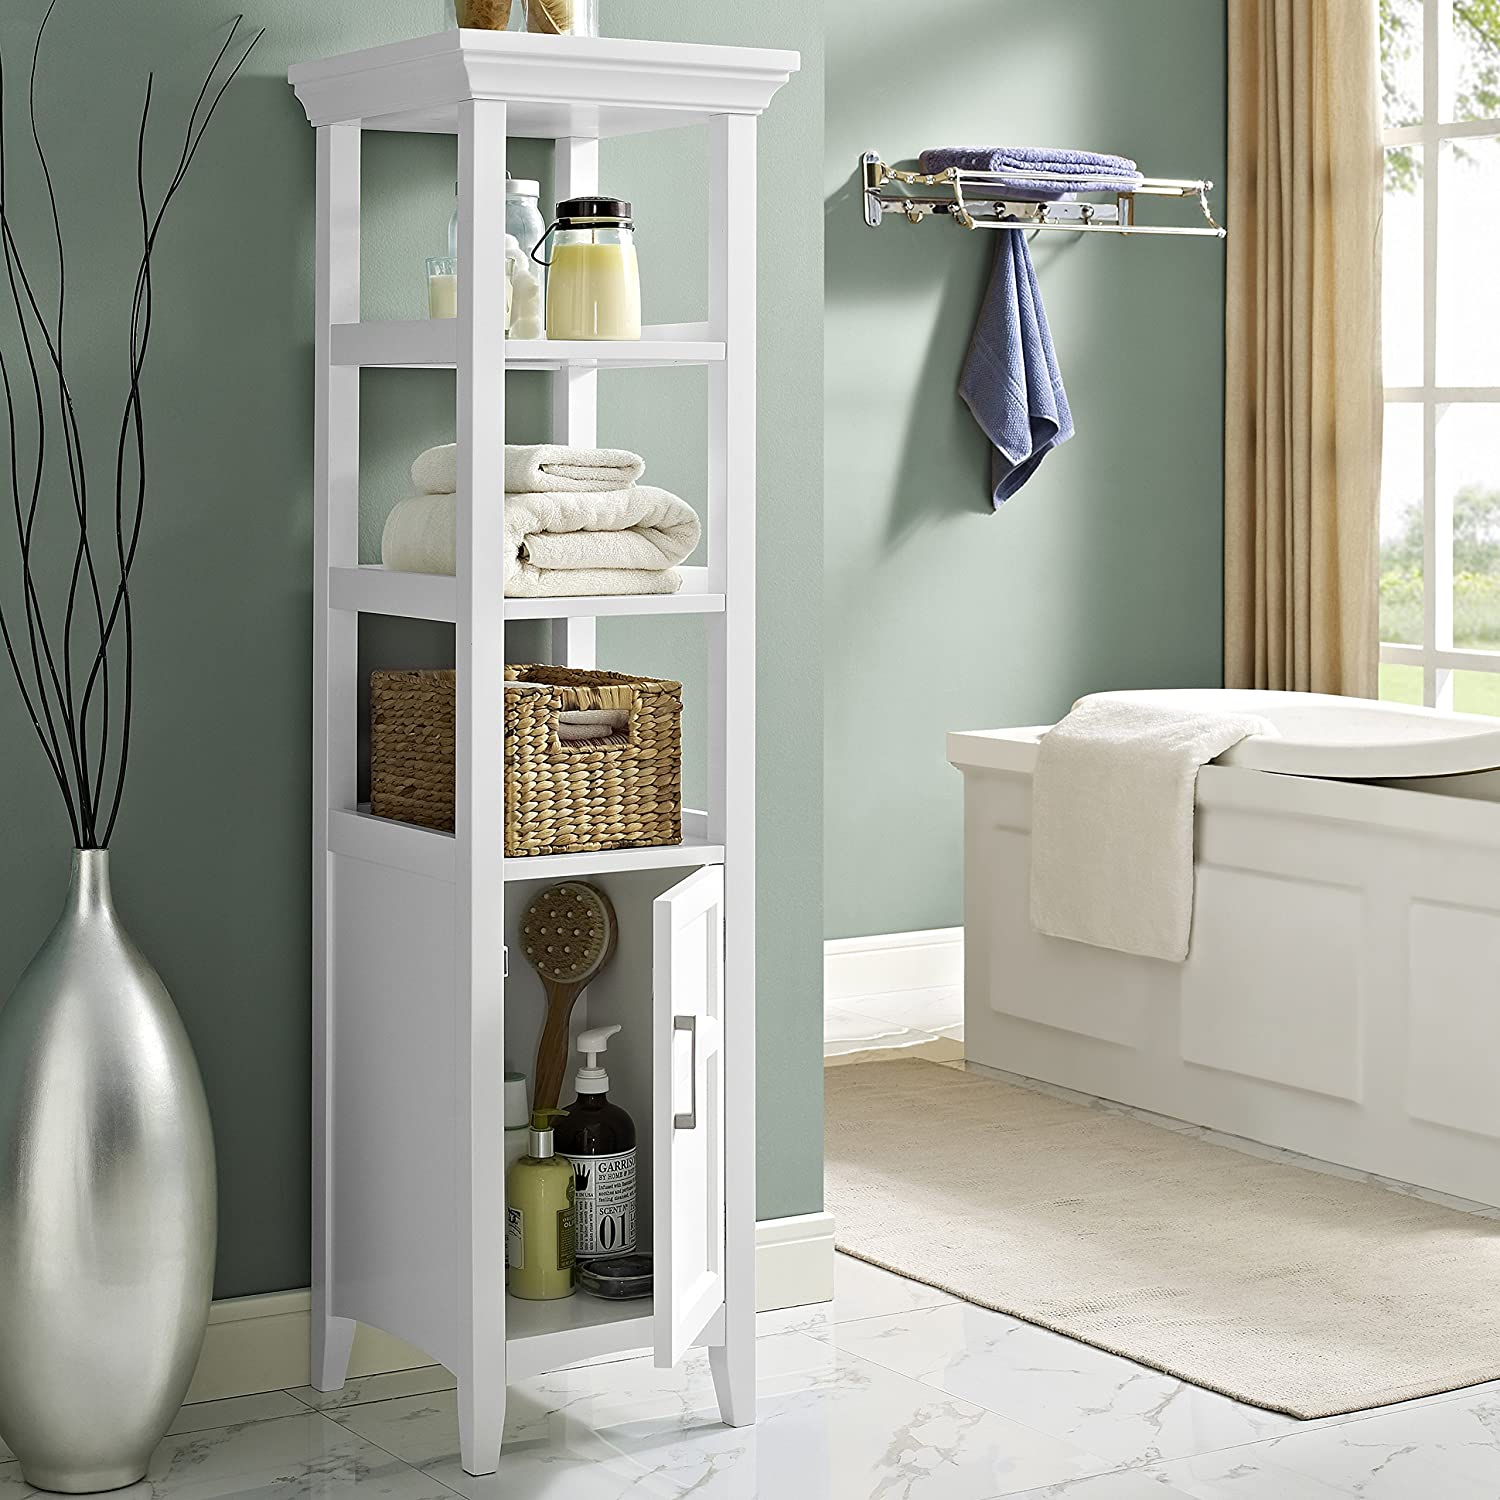 Superbe Amazon.com: Simpli Home Avington Bath Storage Tower, White: Home U0026 Kitchen